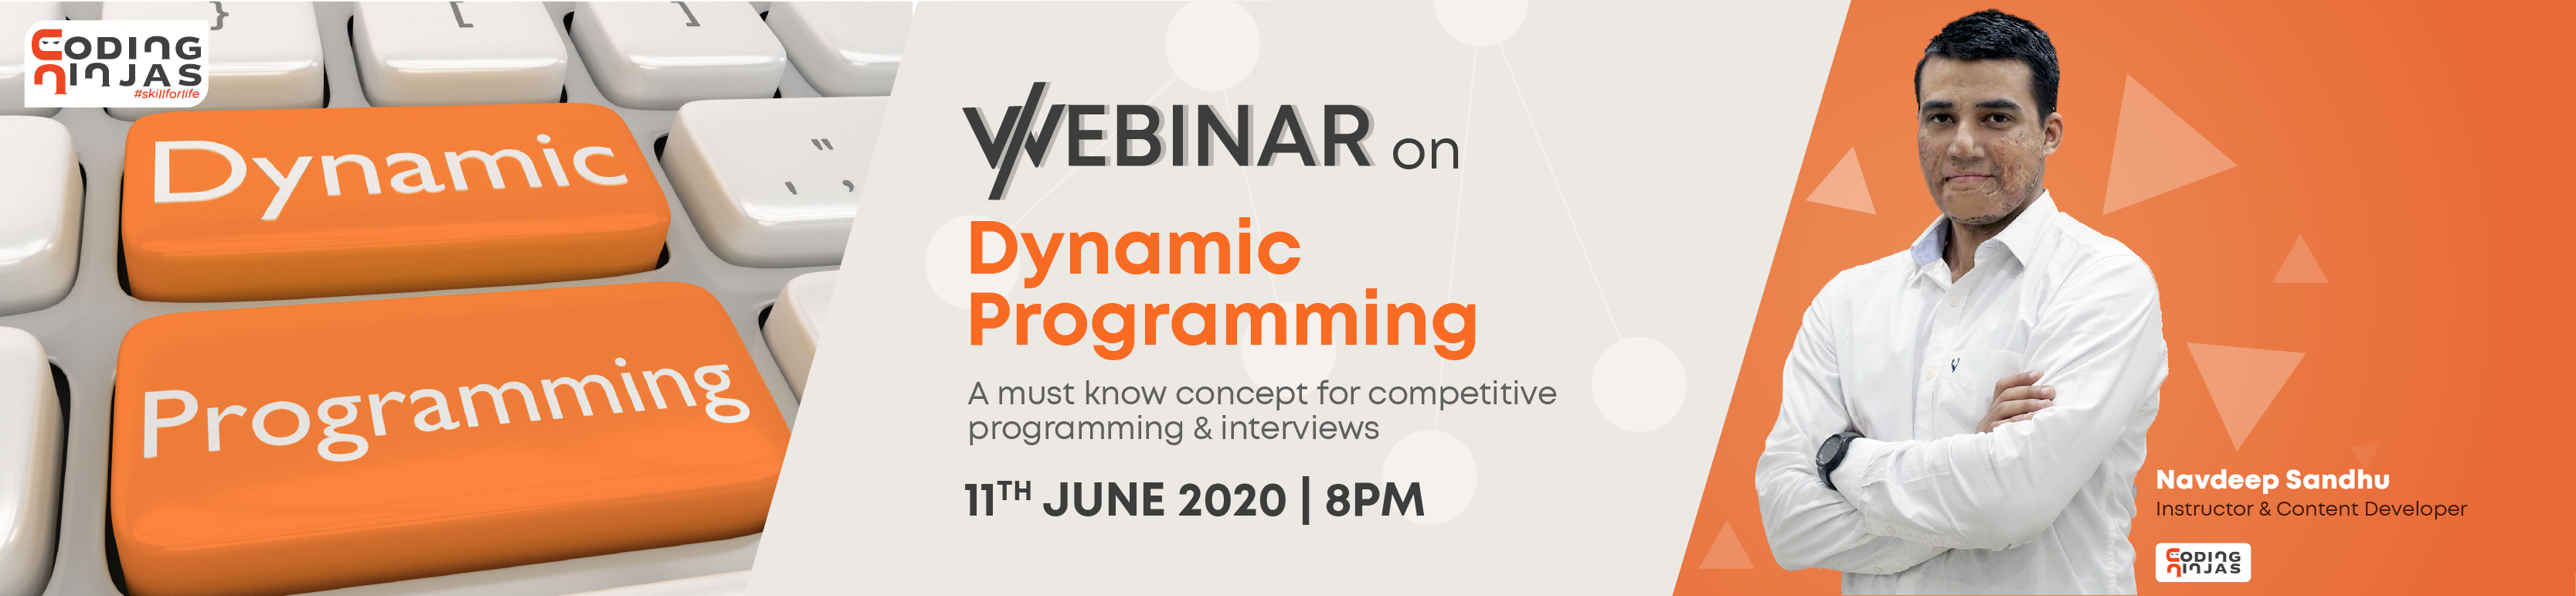 Webinar on Dynamic Programming